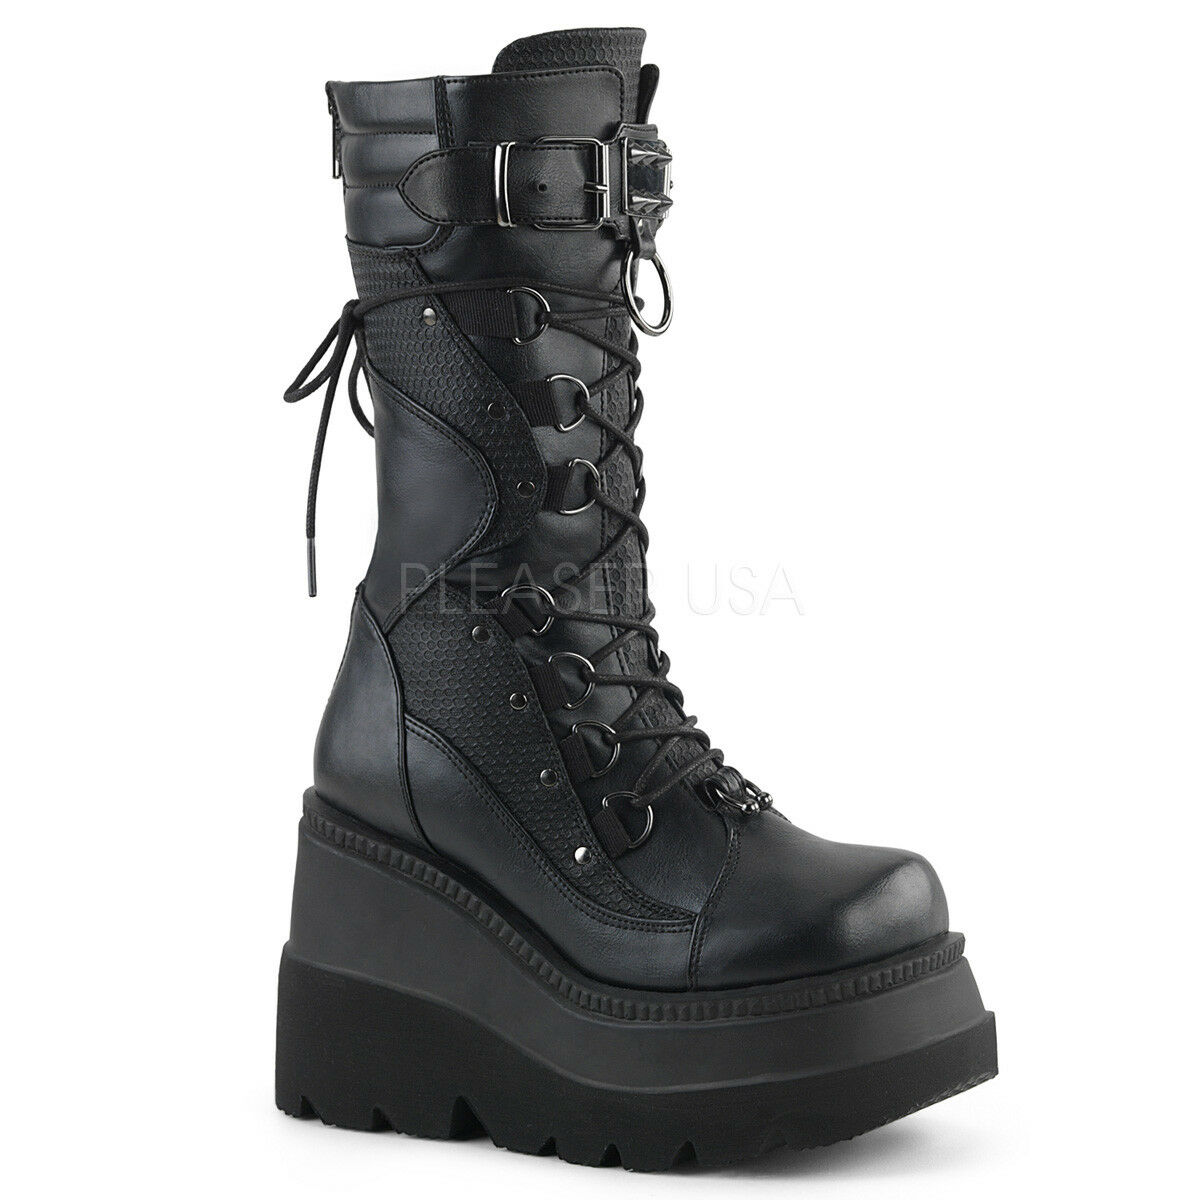 SHAKER- 70 COMBAT GOTH BIKER LACE UP / BACK ZIP WEDGE PLATFORM MID-CALF BOOT